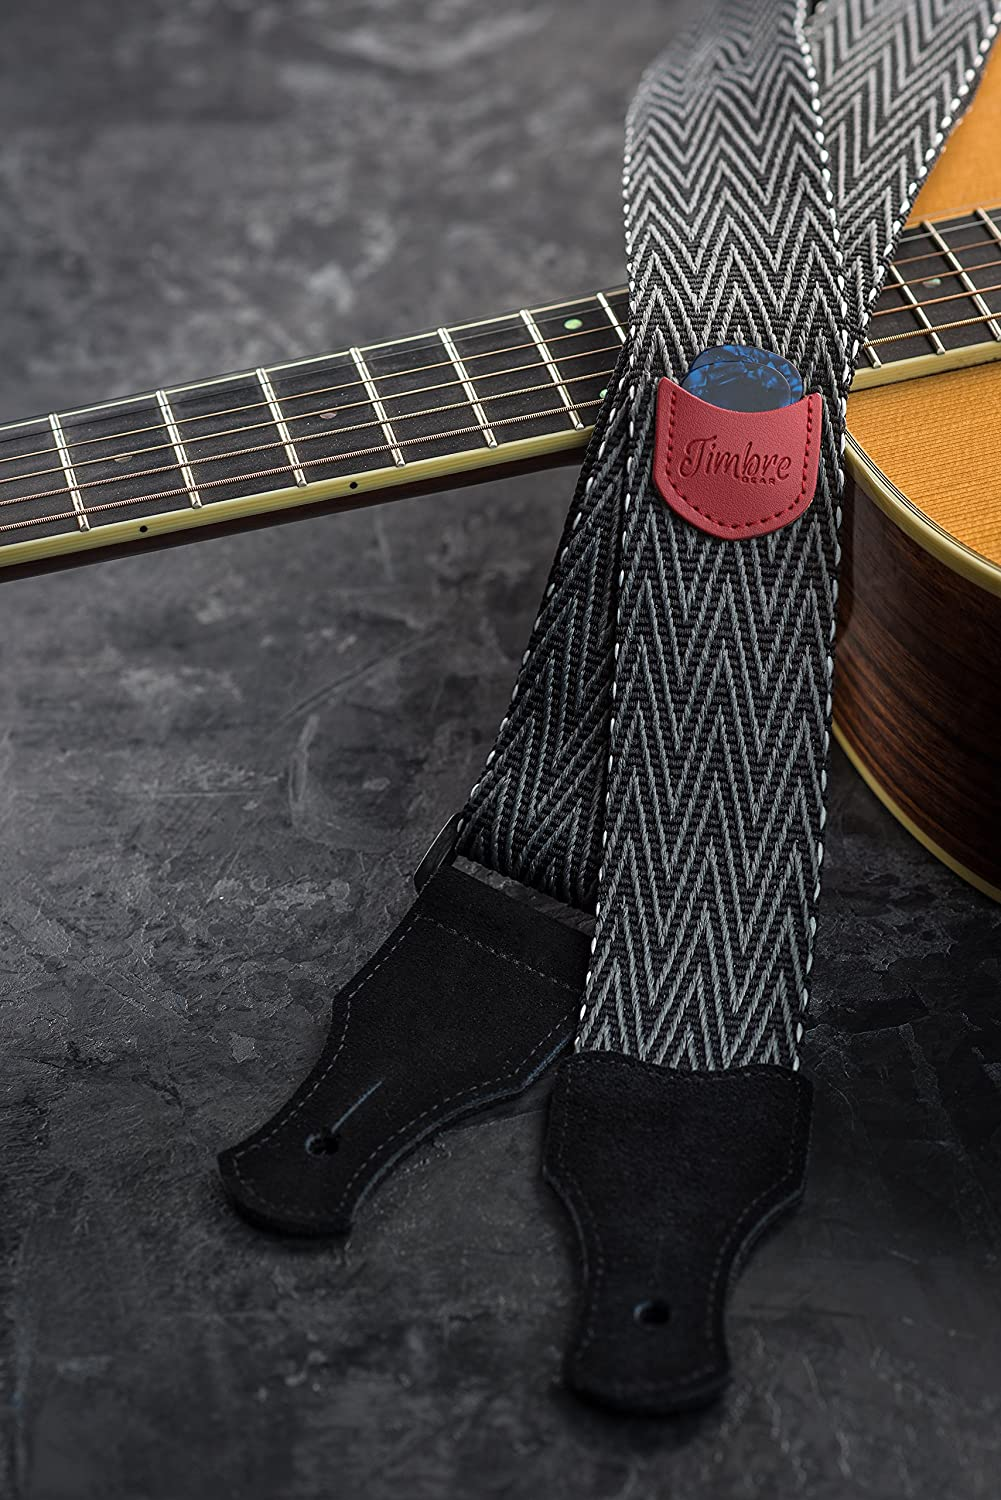 TIMBREGEAR extreme comfort acoustic guitar strap electric guitar strap free two guitar strap locks guitar strap button!